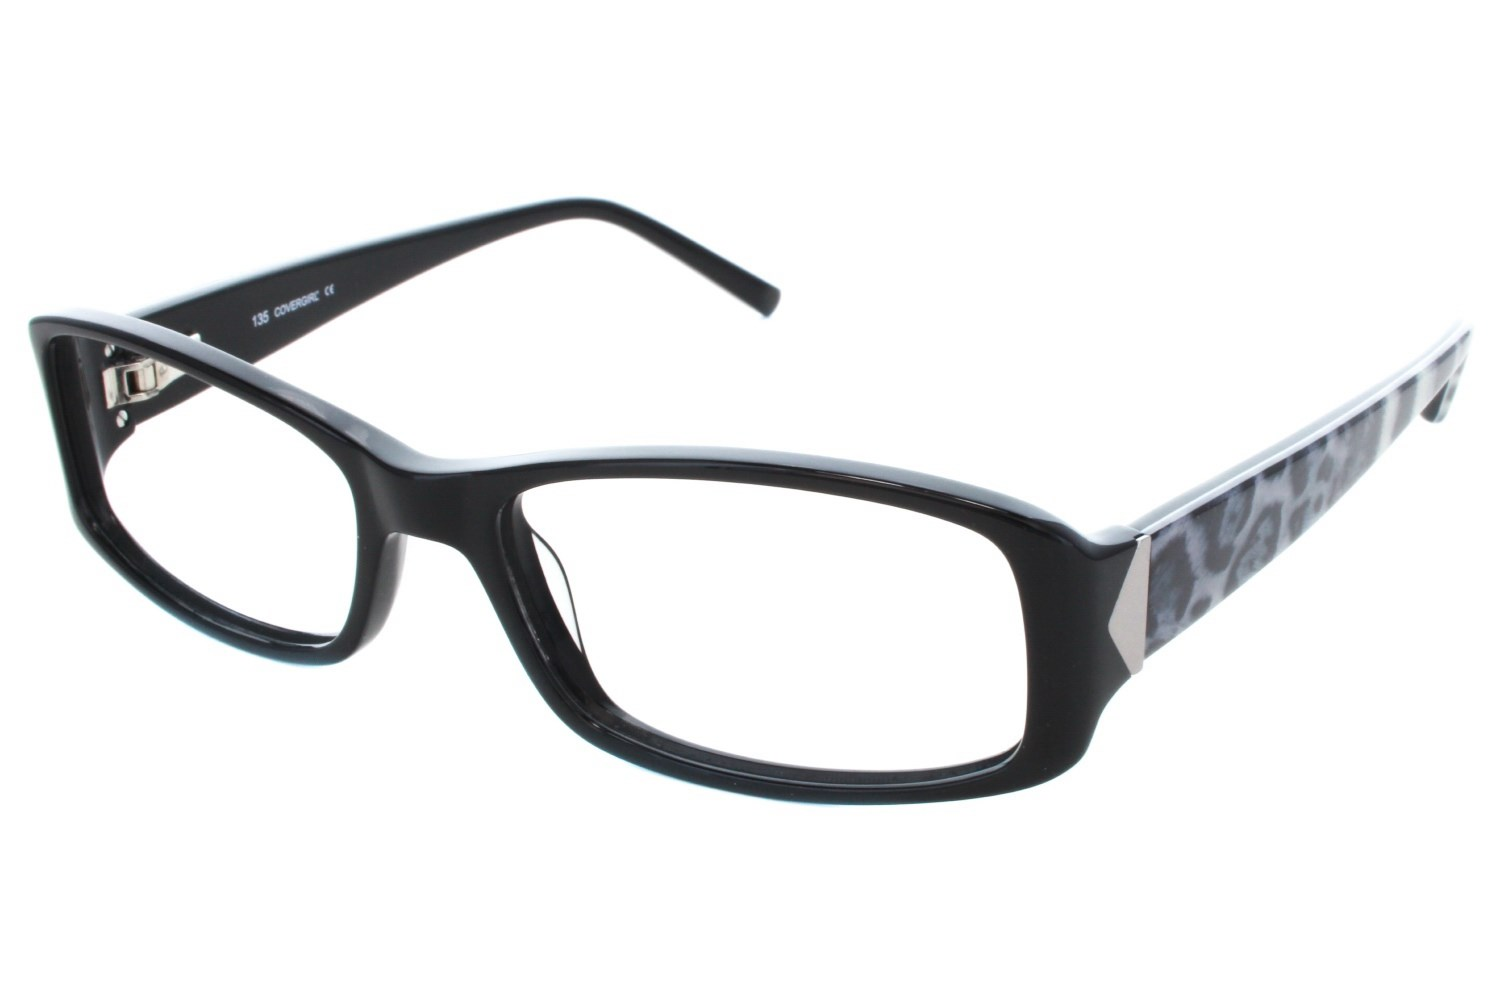 Covergirl CG0435 Prescription Eyeglasses Frames